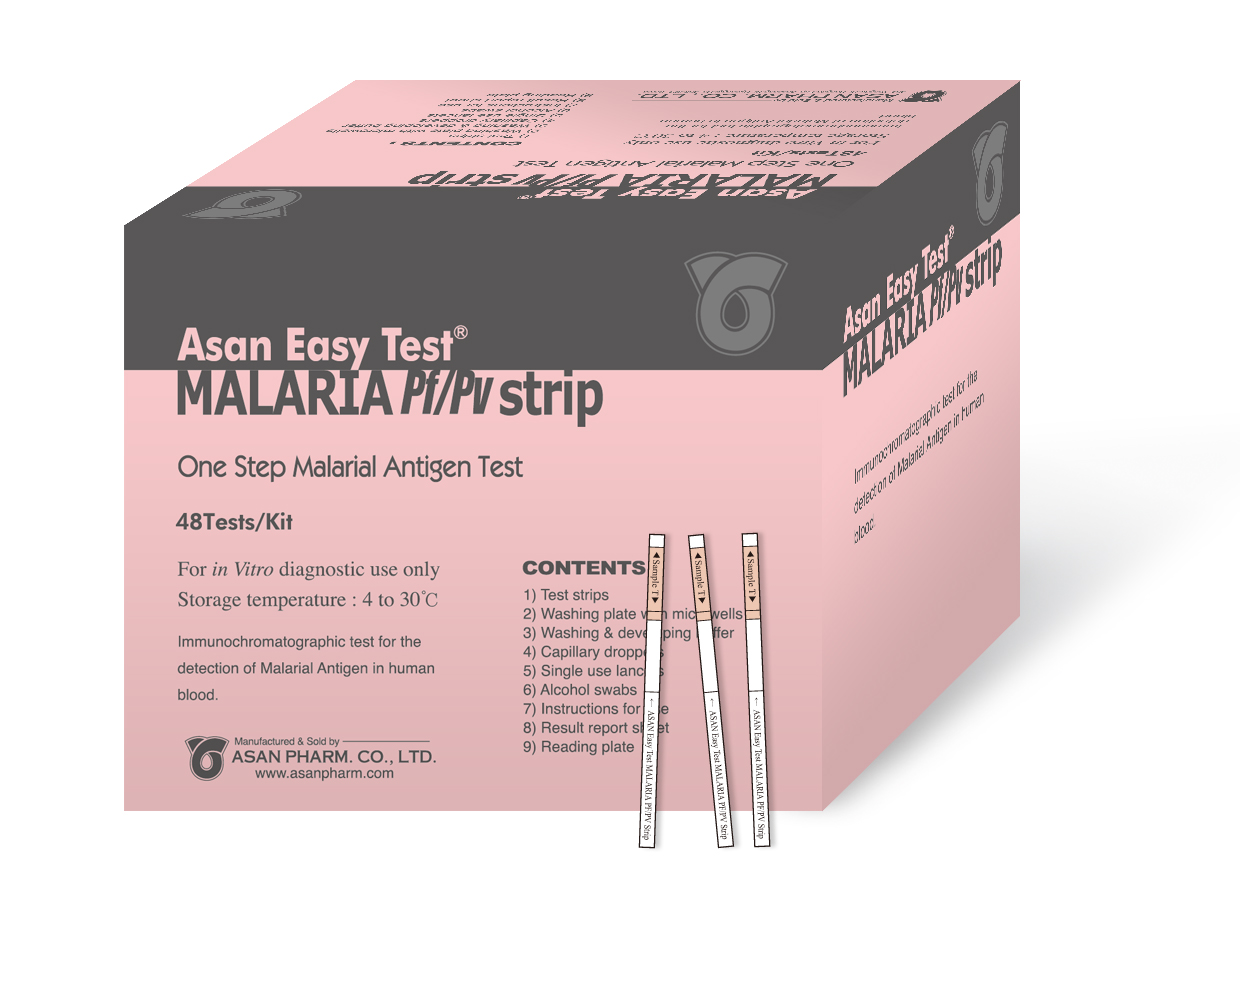 Asan  Easy Test Malaria Pf/Pv strip